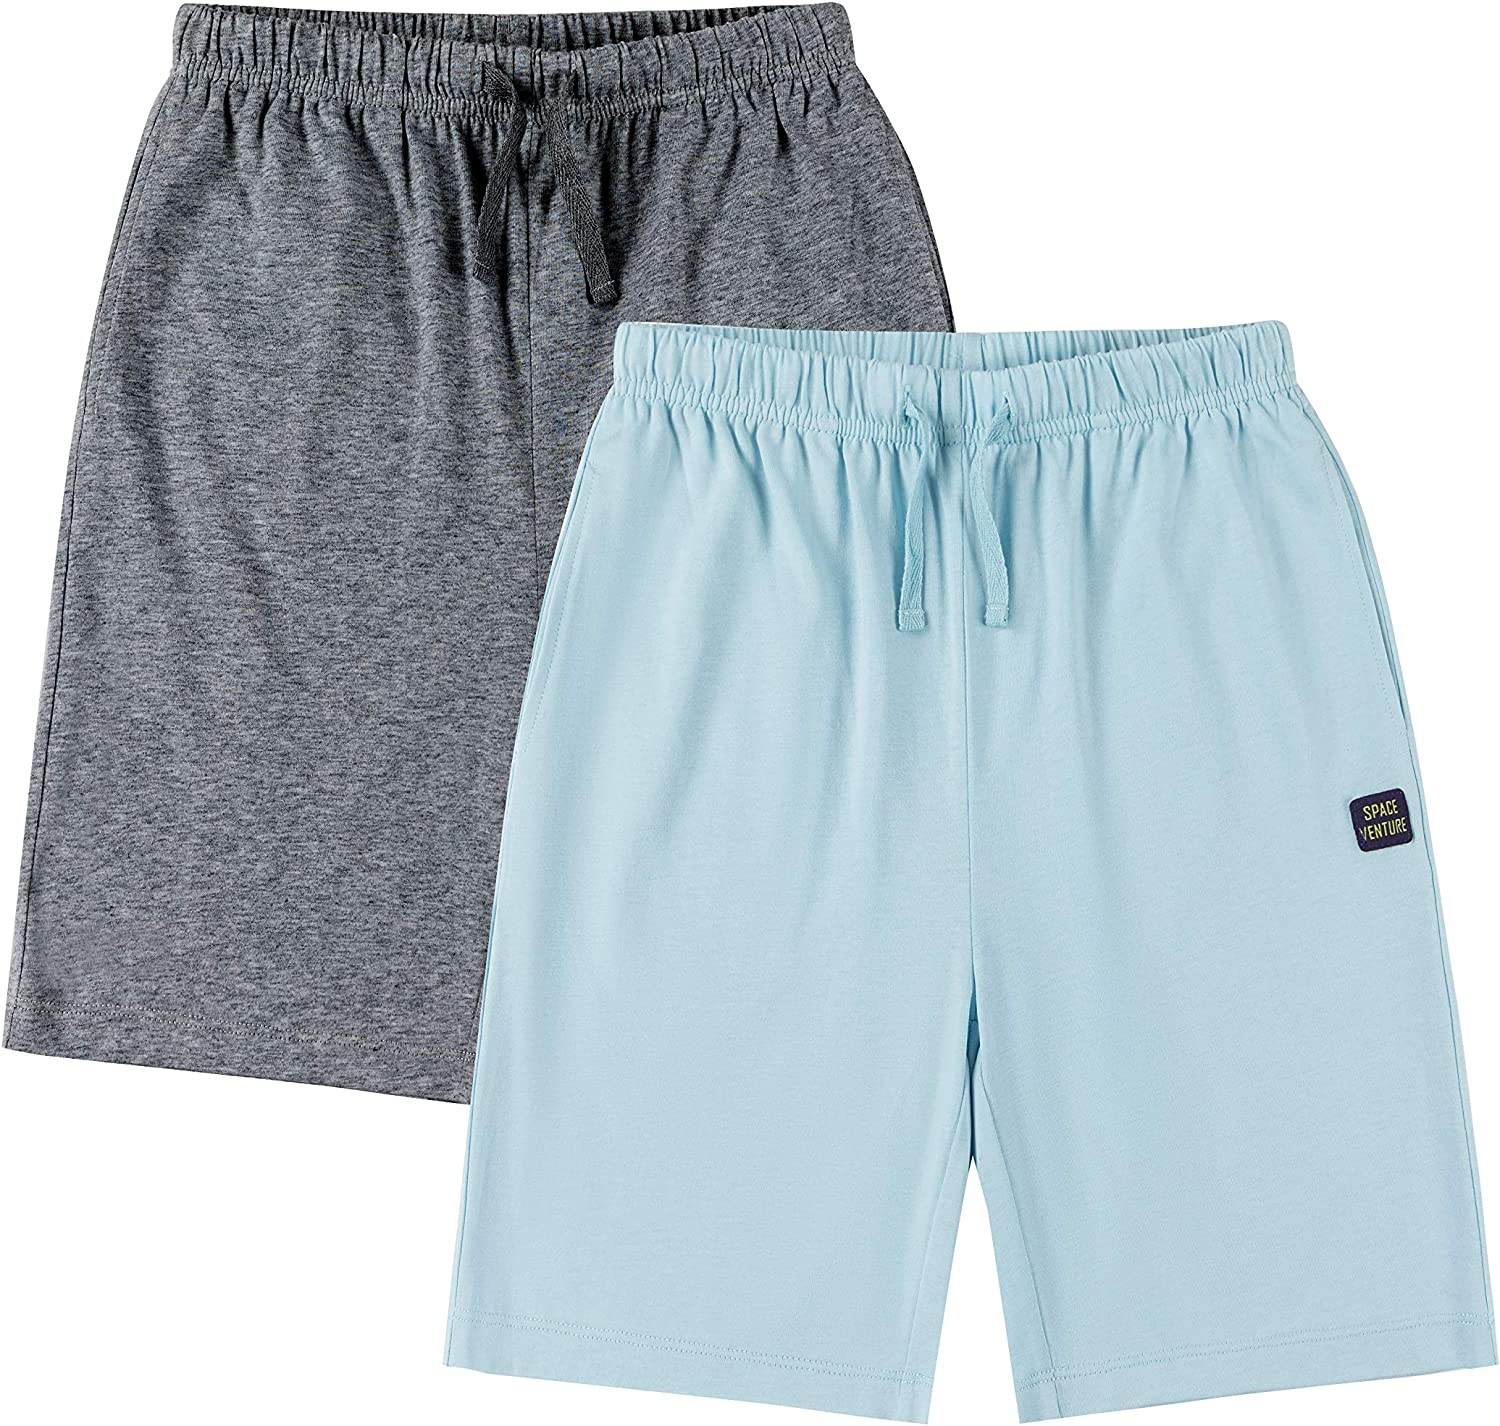 SPACE VENTURE Boys Cotton Shorts with Pockets Girls Athletic Shorts 1 or 2-Packs for Kids 3-12Y